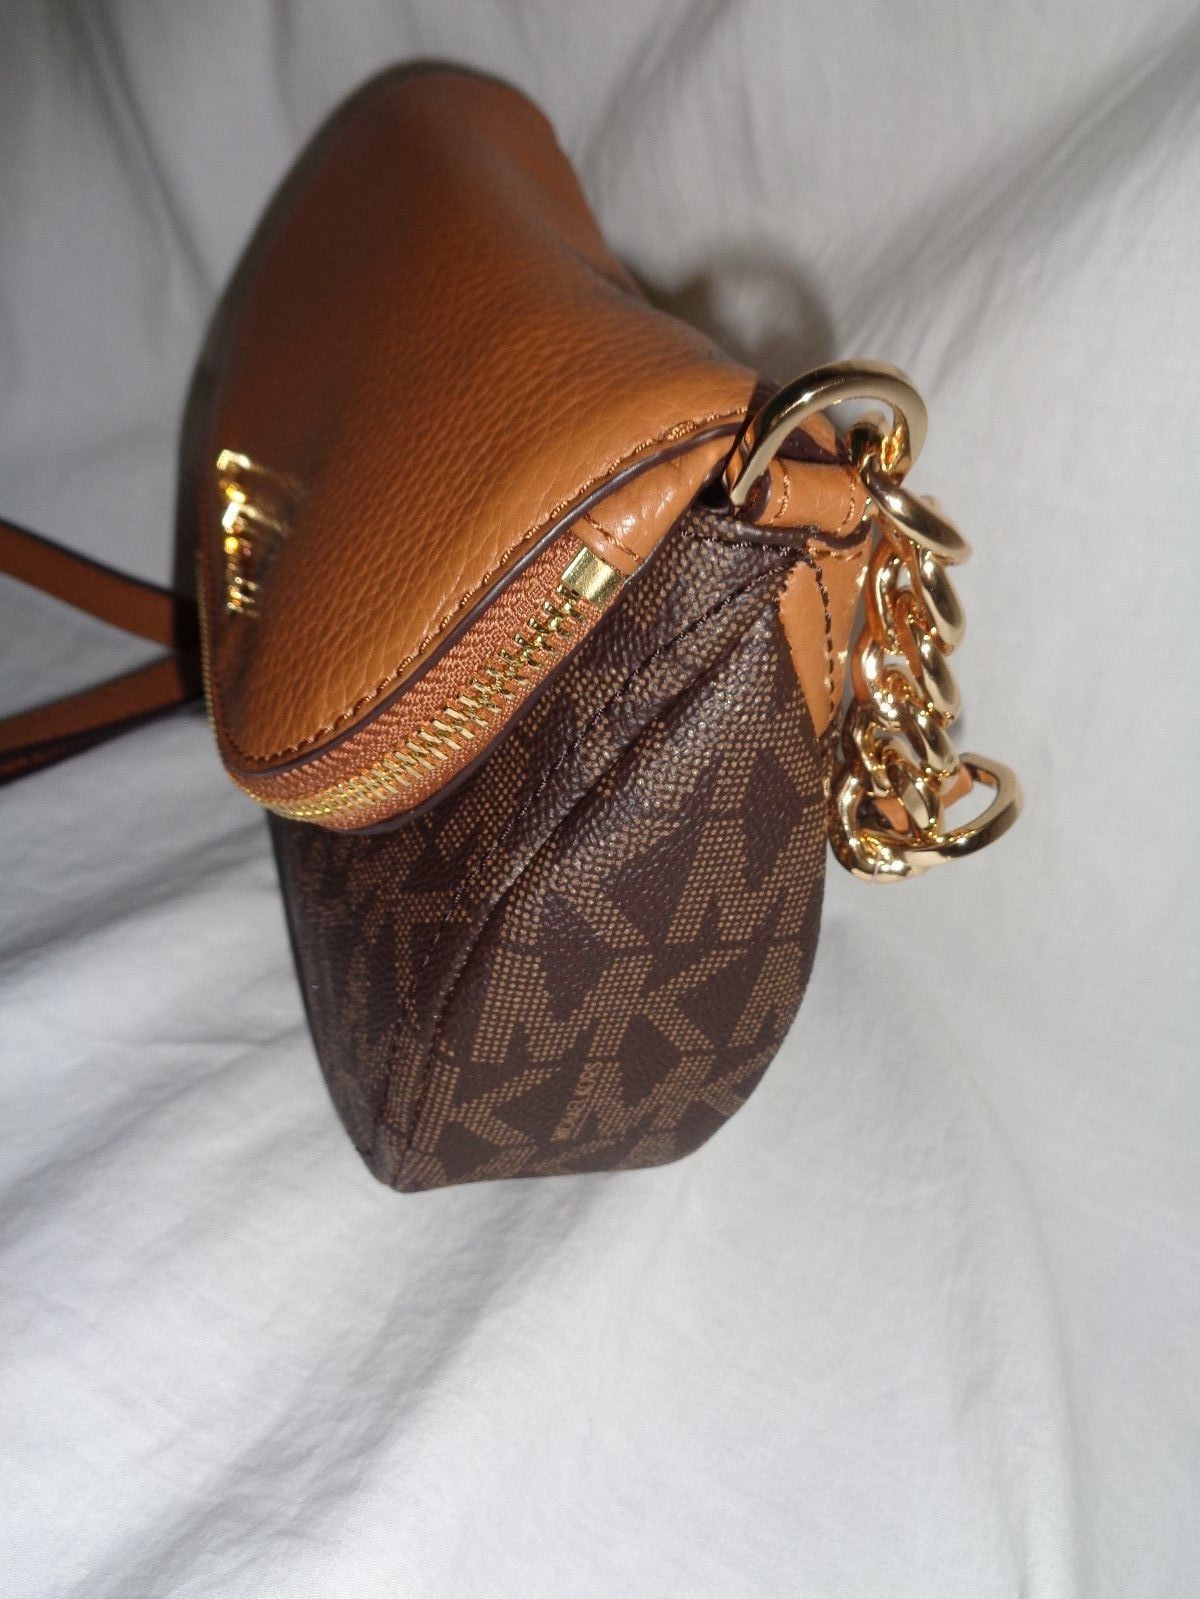 735d4f19eebac MICHAEL KORS BEDFORD FLAP CROSSBODY MK LOGO LEATHER BROWN ACORN SMALL  HANDBAG  99.78 Michael Kors Bedford